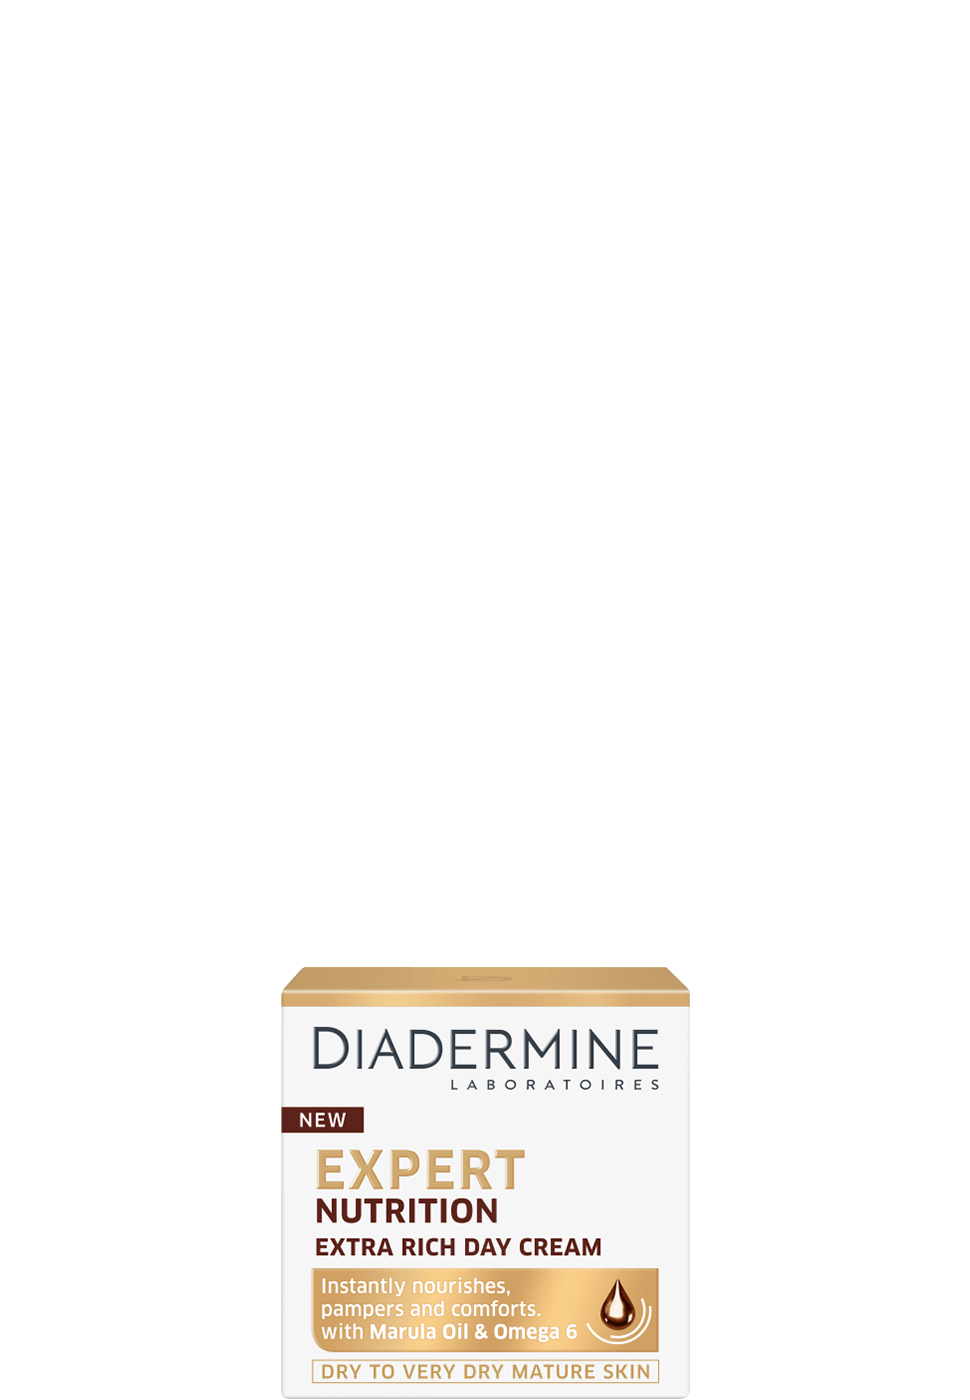 diadermine_com_expert_nutrition_extra_rich_day_cream_970x1400